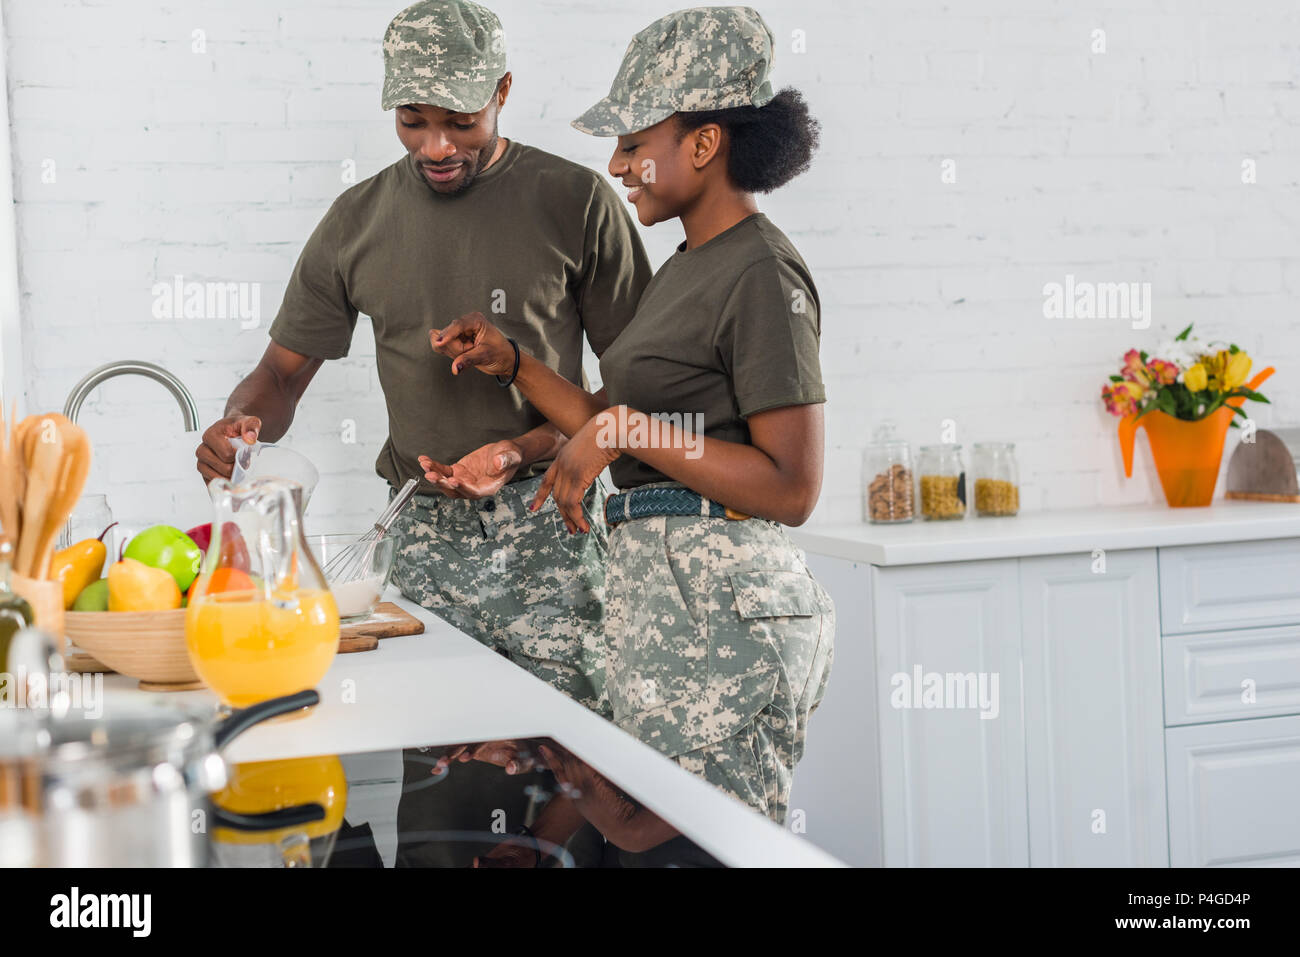 African american female soldier with man cooking together at home kitchen - Stock Image